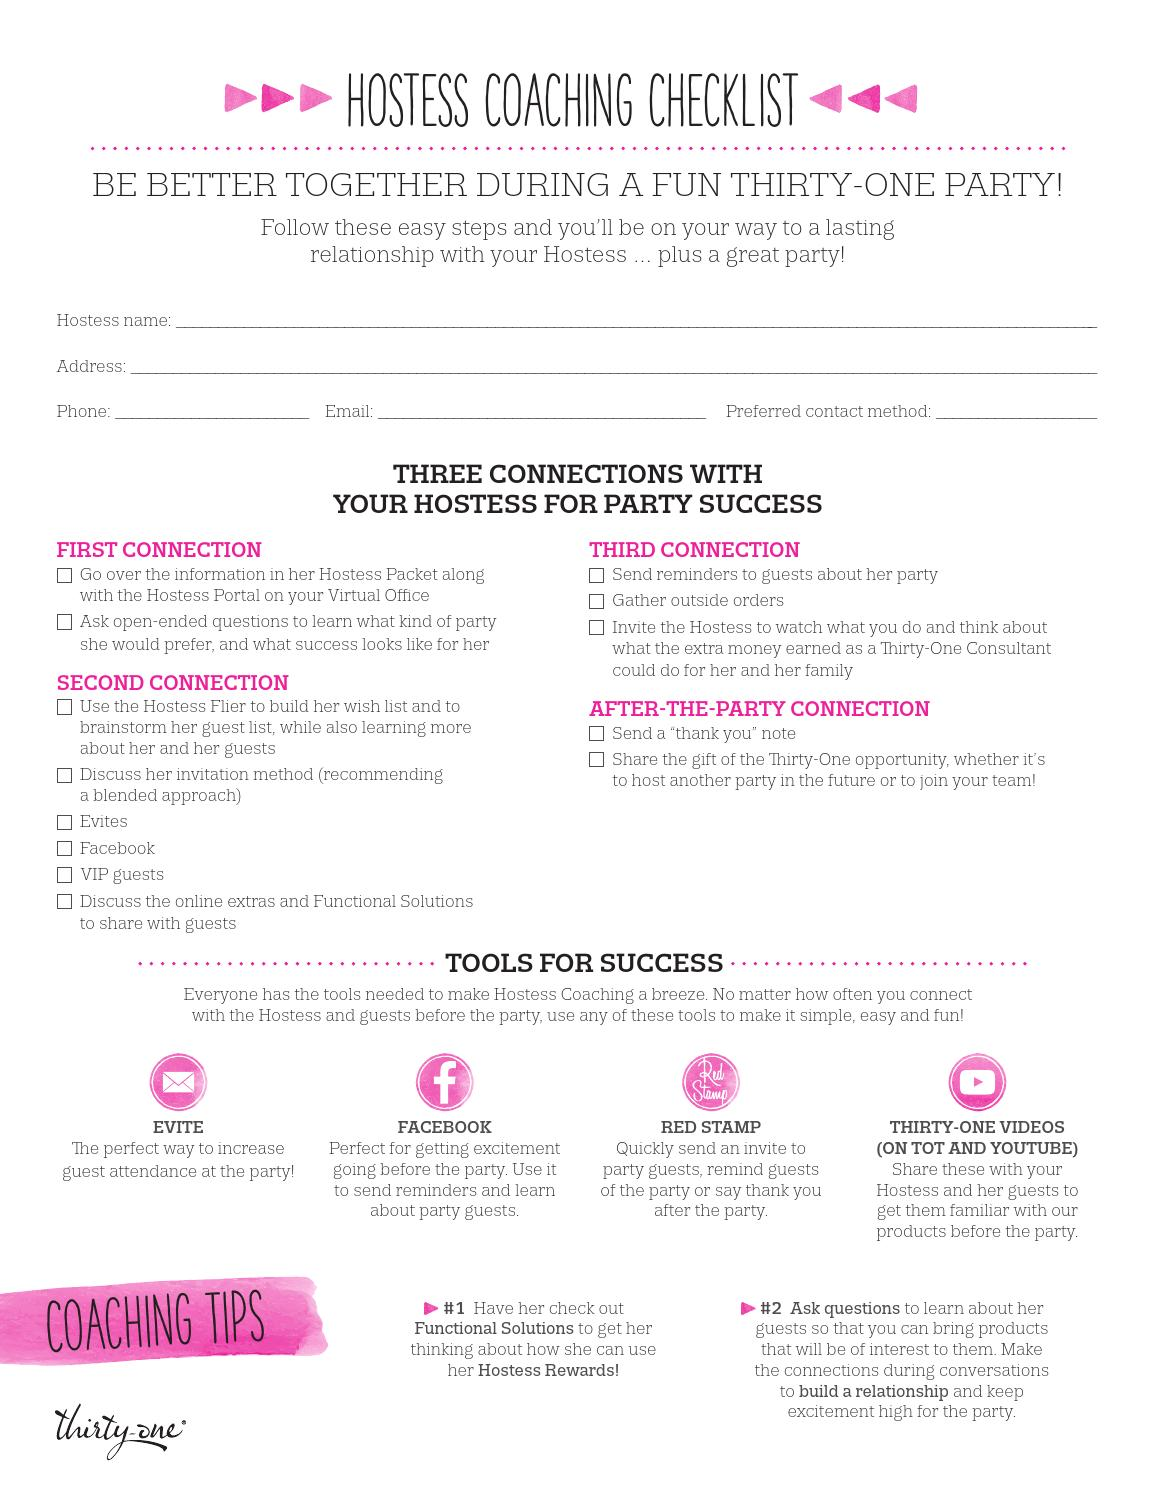 Spring hostess coaching checklist us by Nicole Landen - issuu